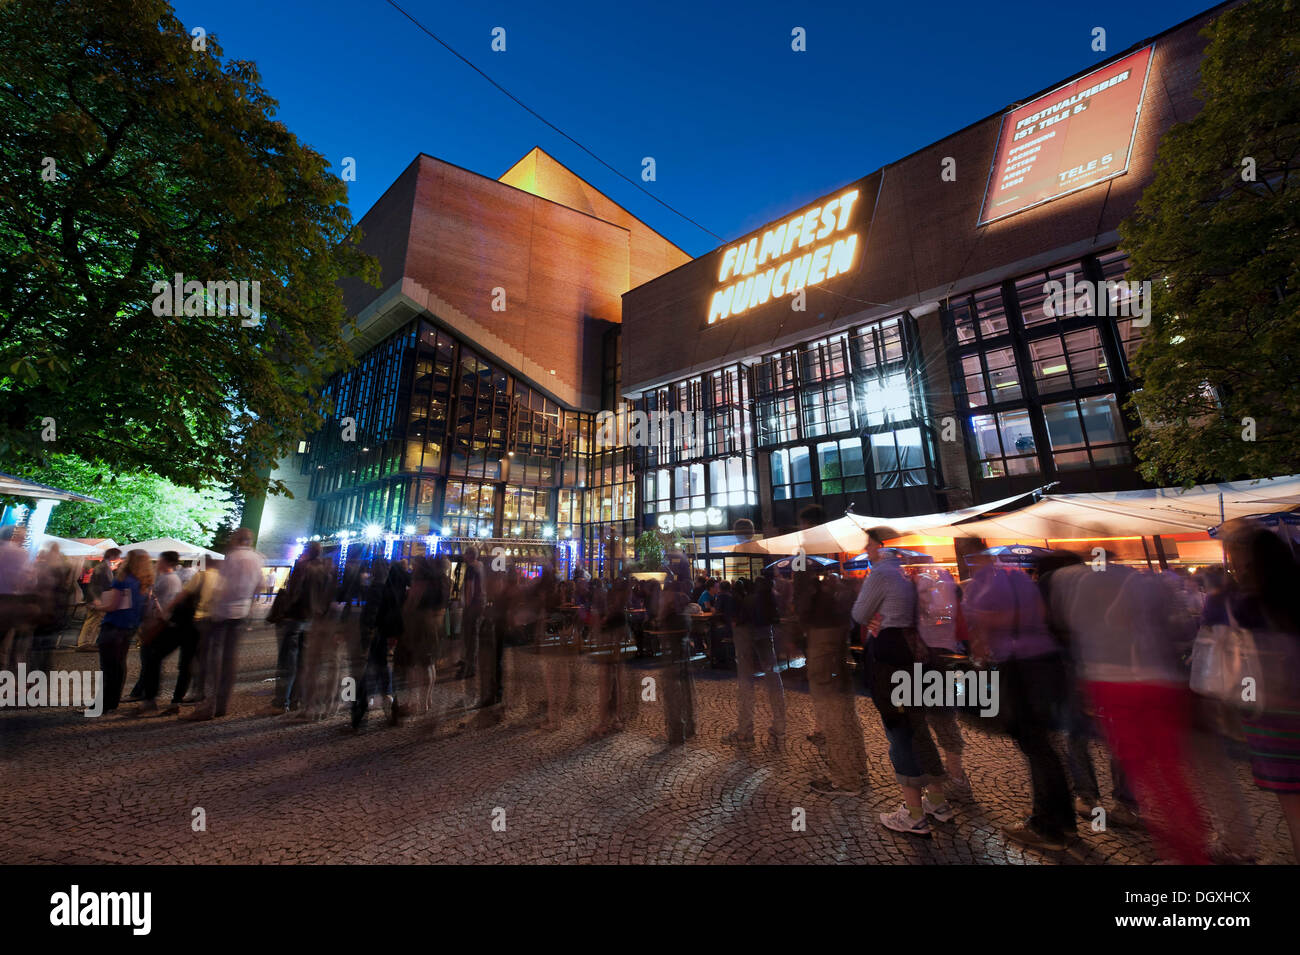 People during the Munich Film Festival in front of the event center Gasteig in Munich, Bavaria - Stock Image